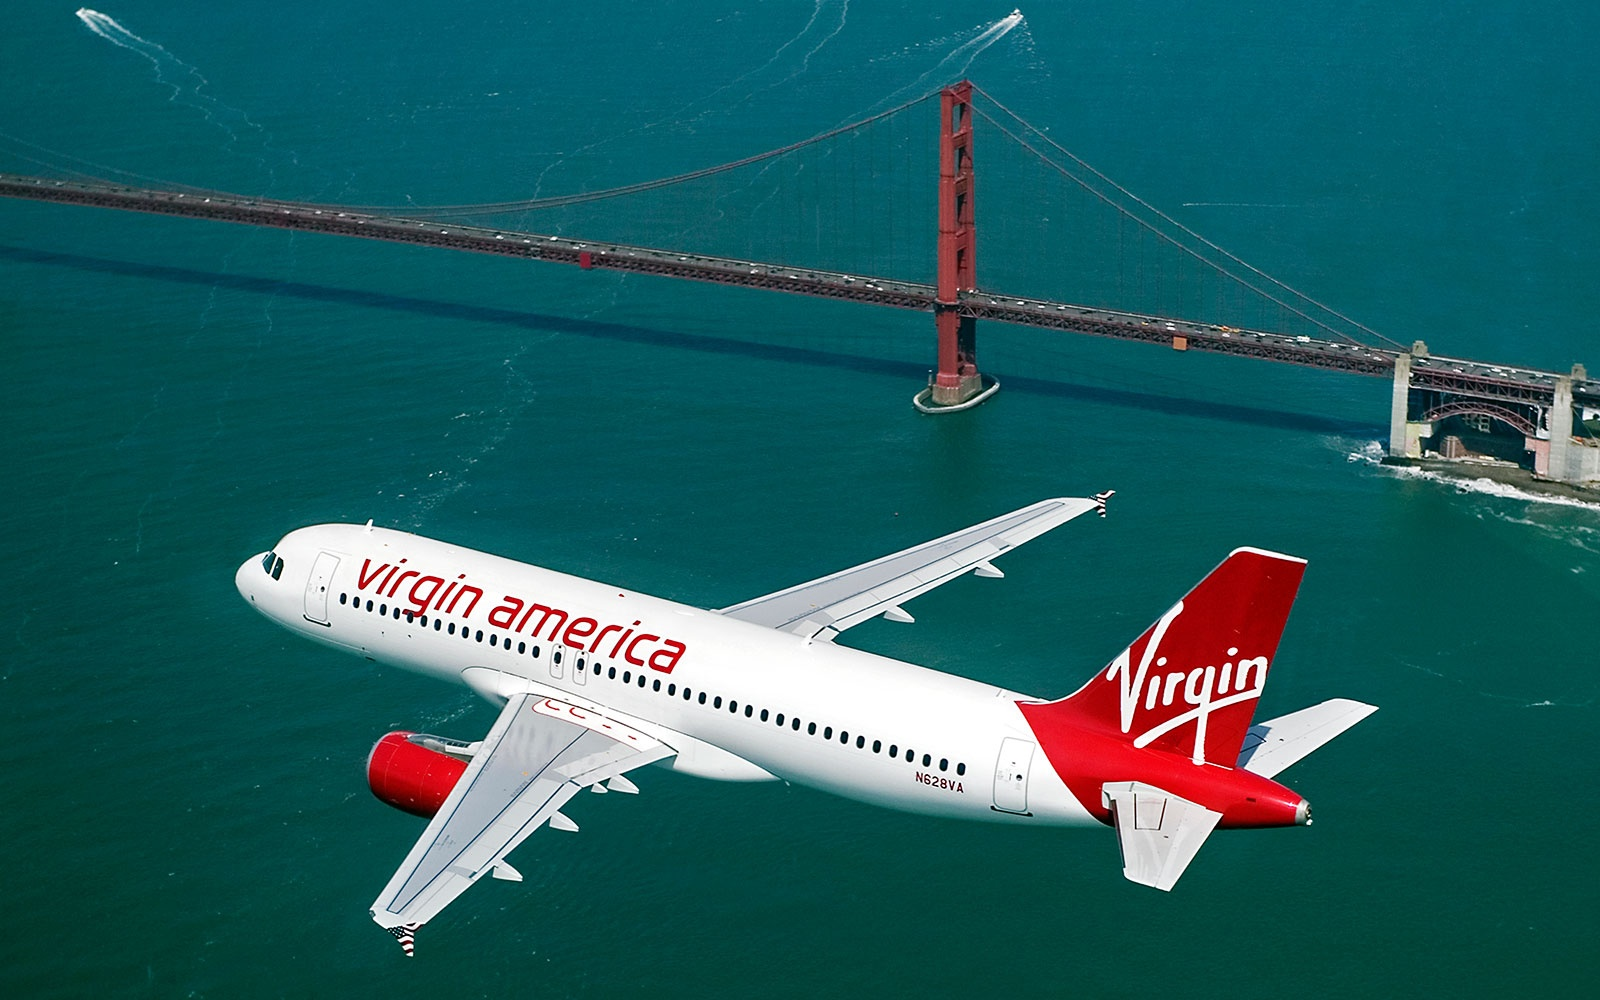 No. 1 Domestic: Virgin America